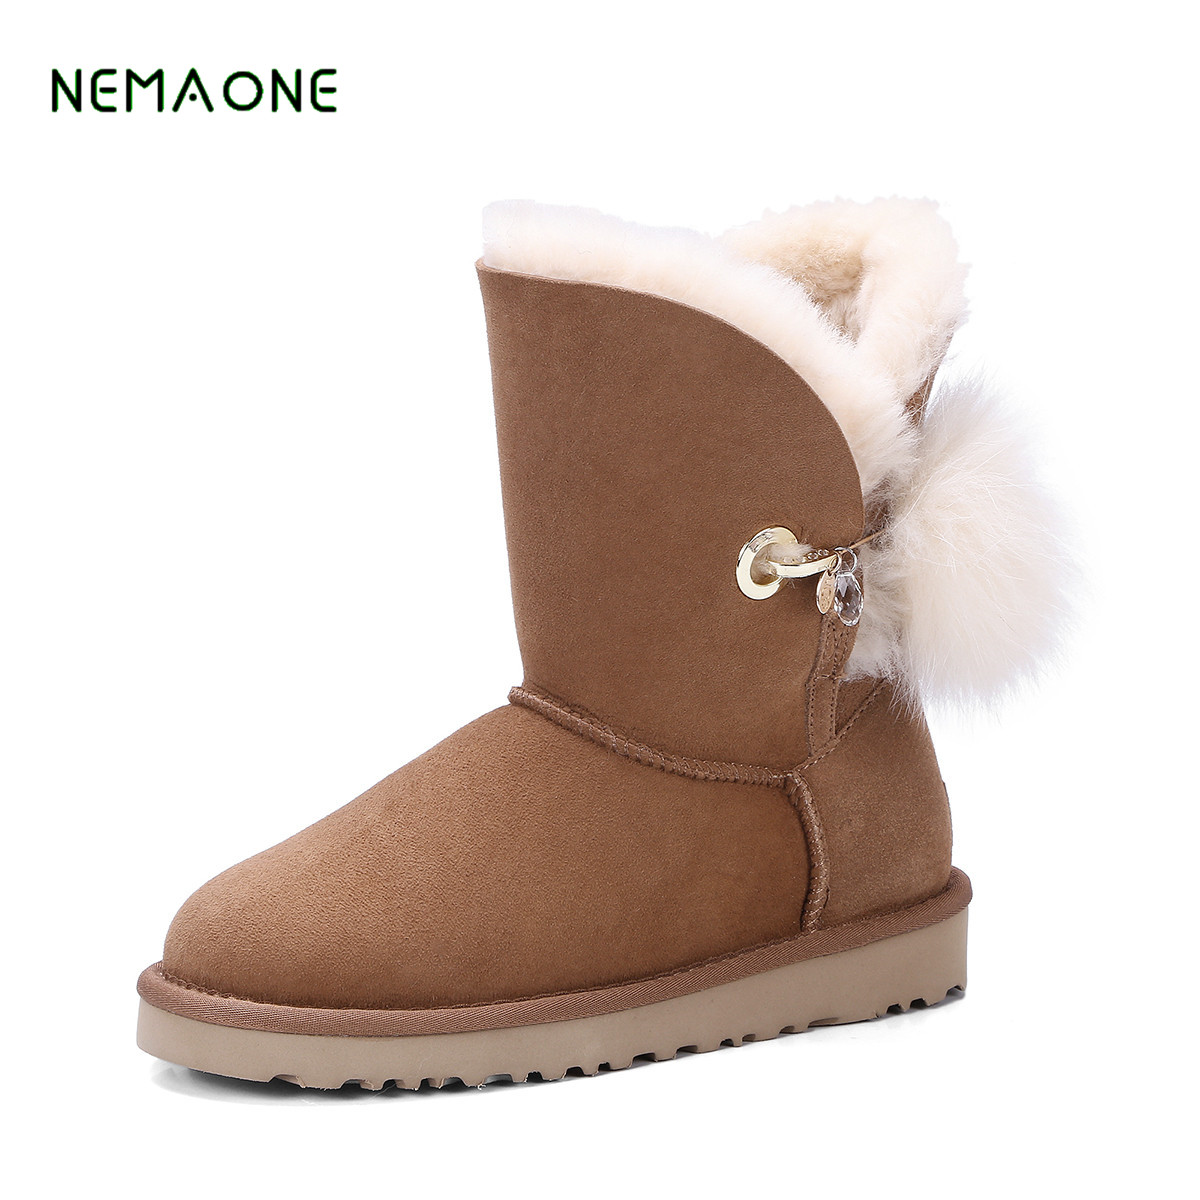 NEMAONE New Fashion 100% Genuine Cowhide Leather Snow Boots Real Fur Classic Mujer Botas Waterproof Winter Shoes for Women цены онлайн